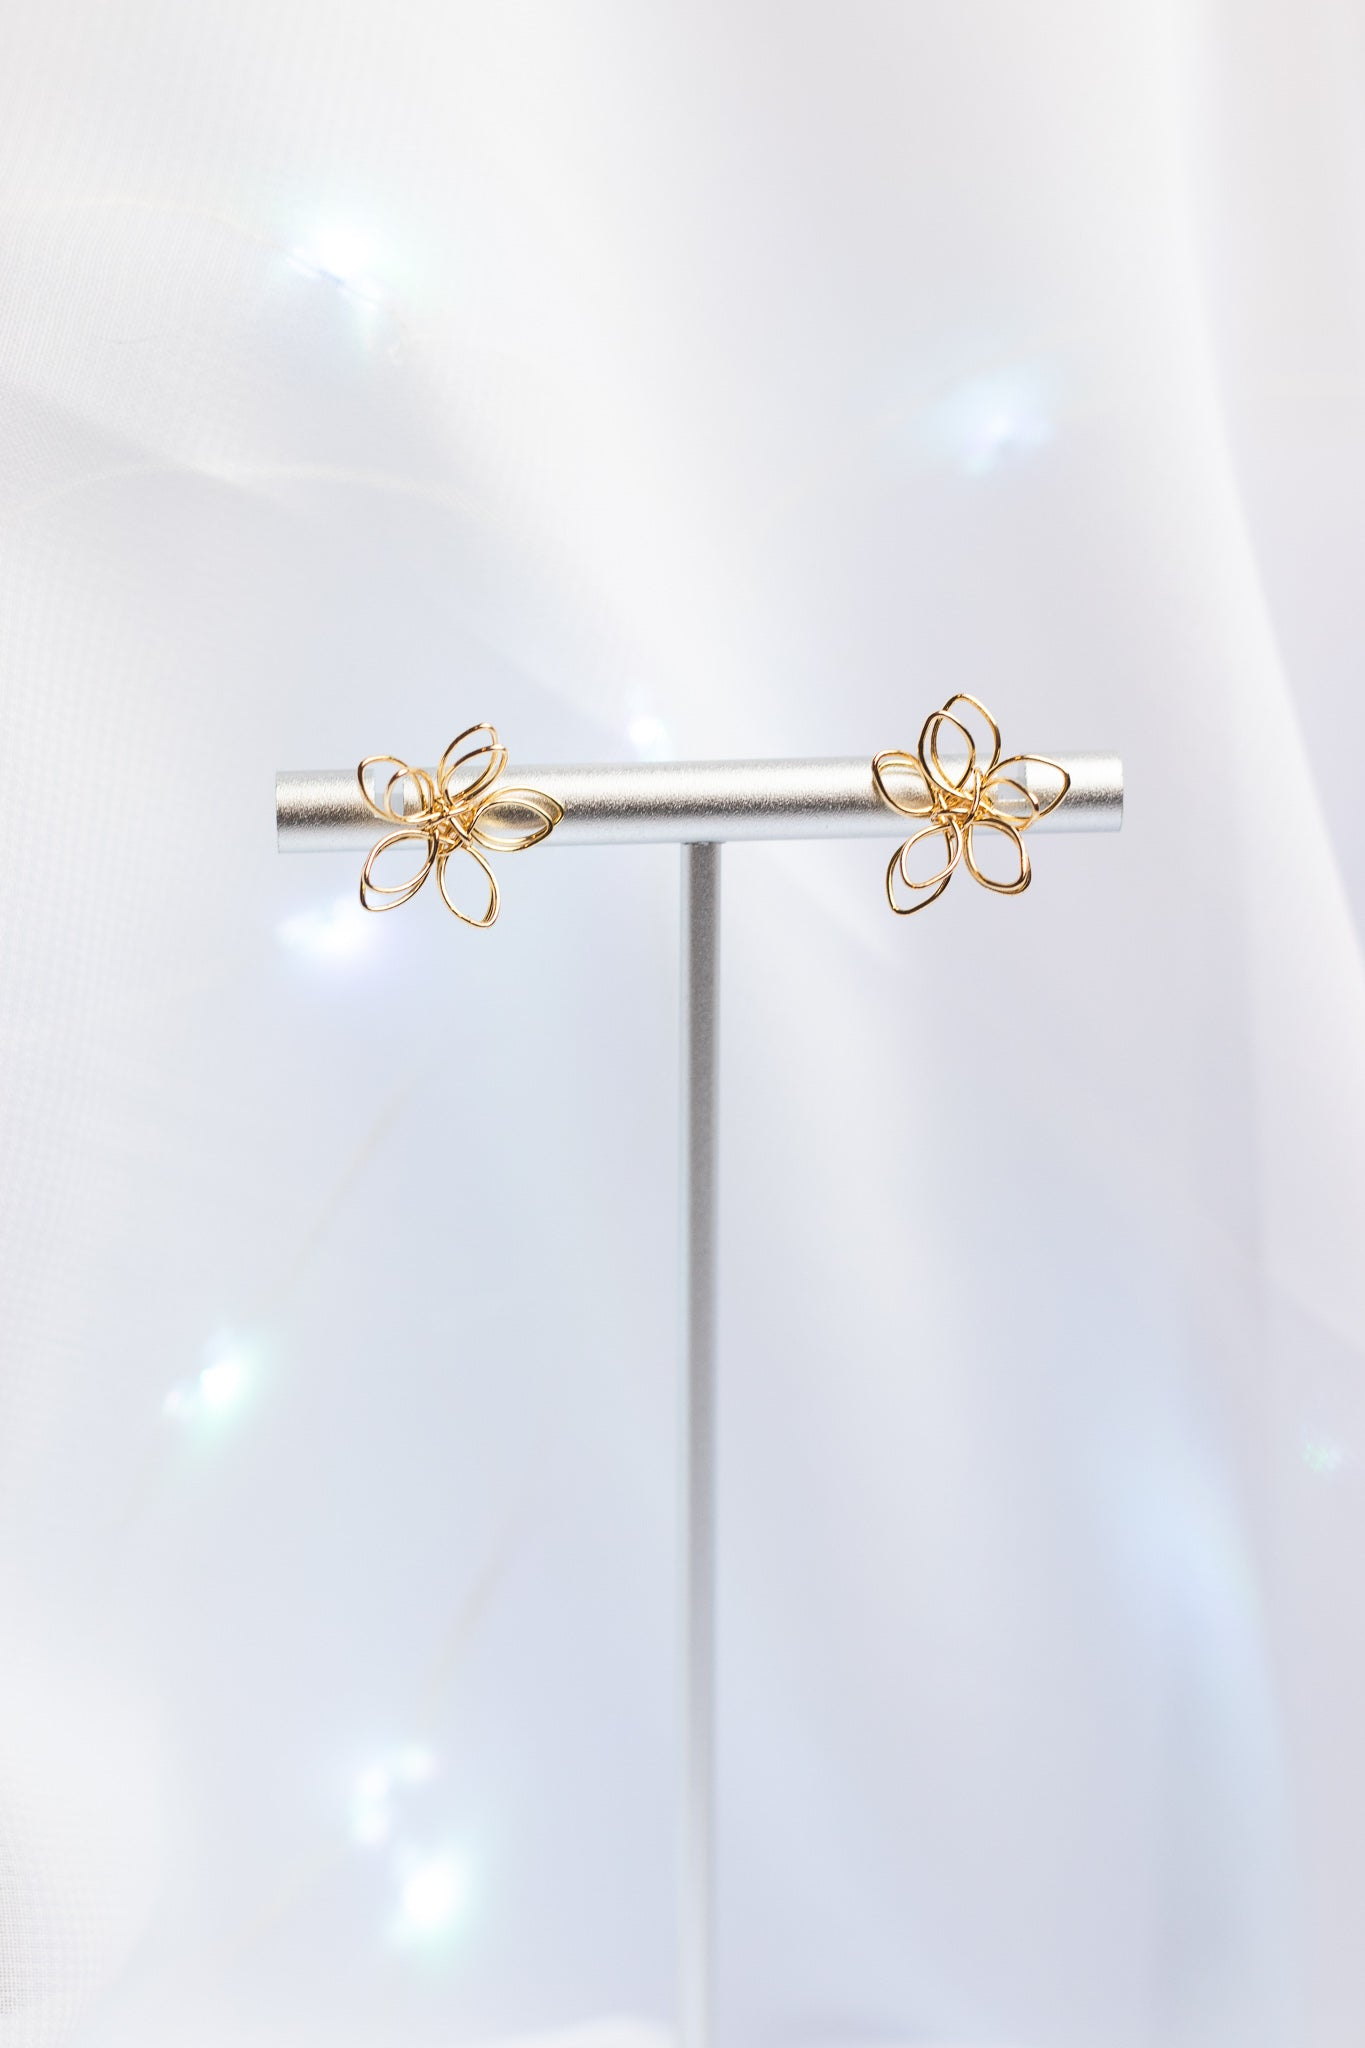 GOLD WIRE FLOWER STUD EARRINGS (14K)